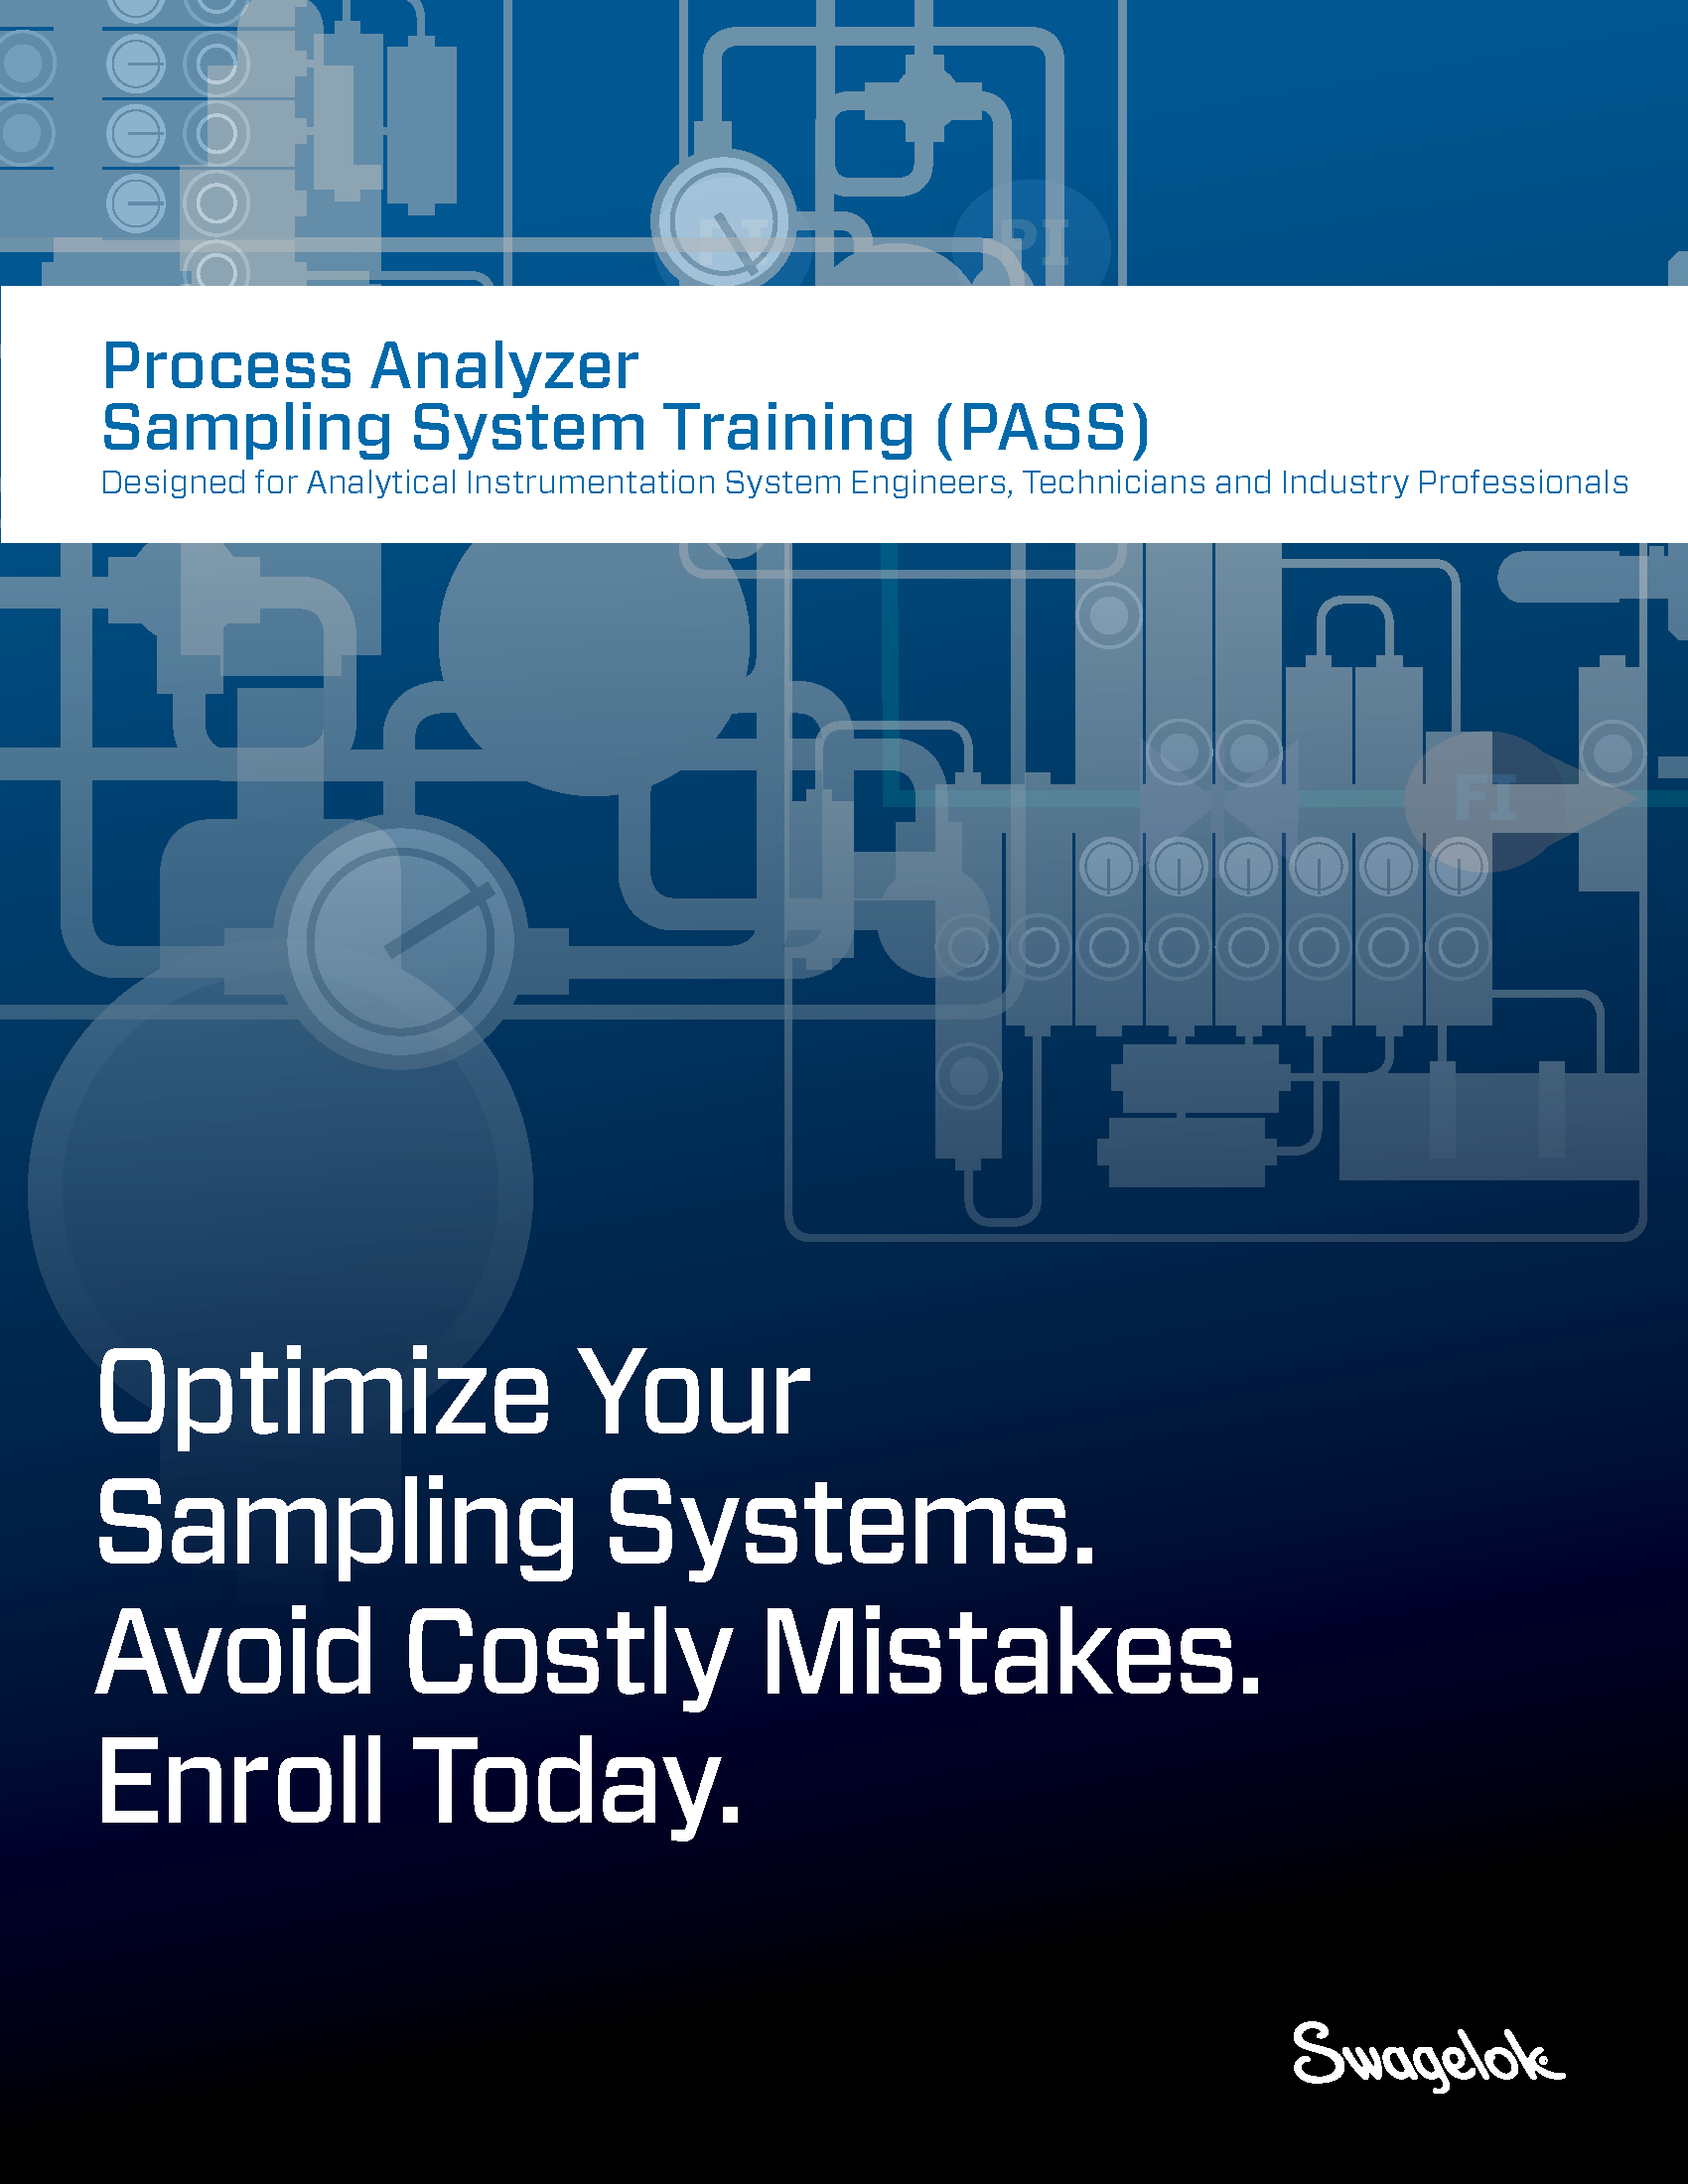 Process Analyzer Sampling System Training (PASS)